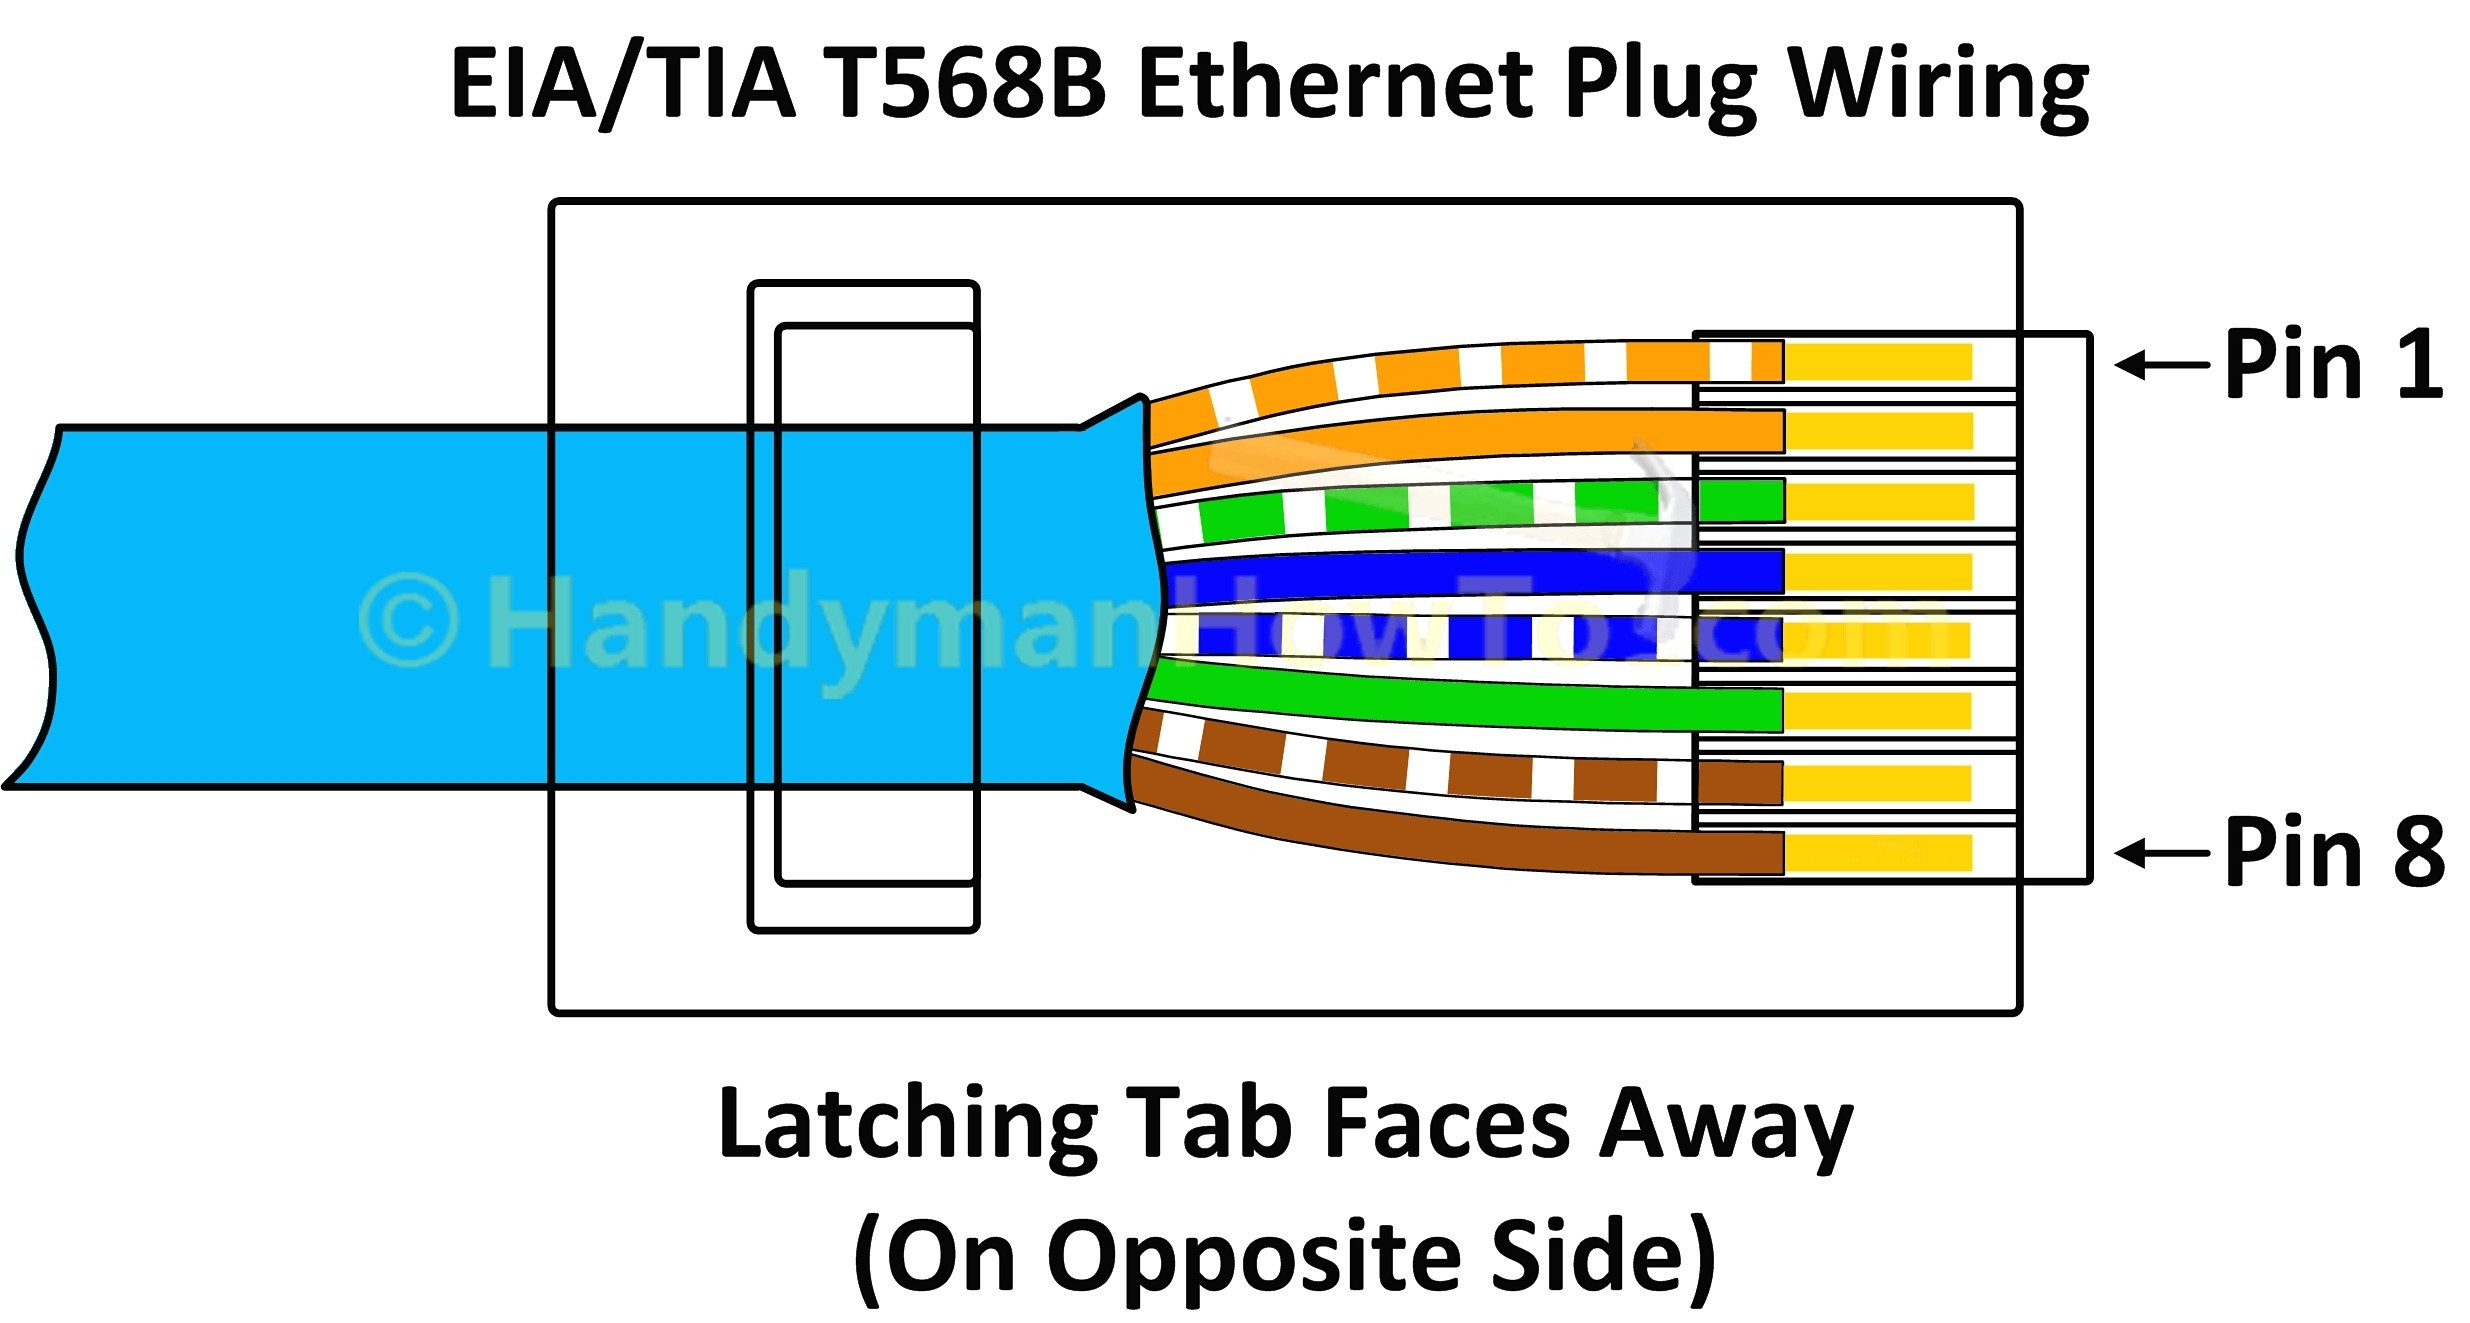 Cat 5 Wiring Diagram Pdf | Free Wiring Diagram